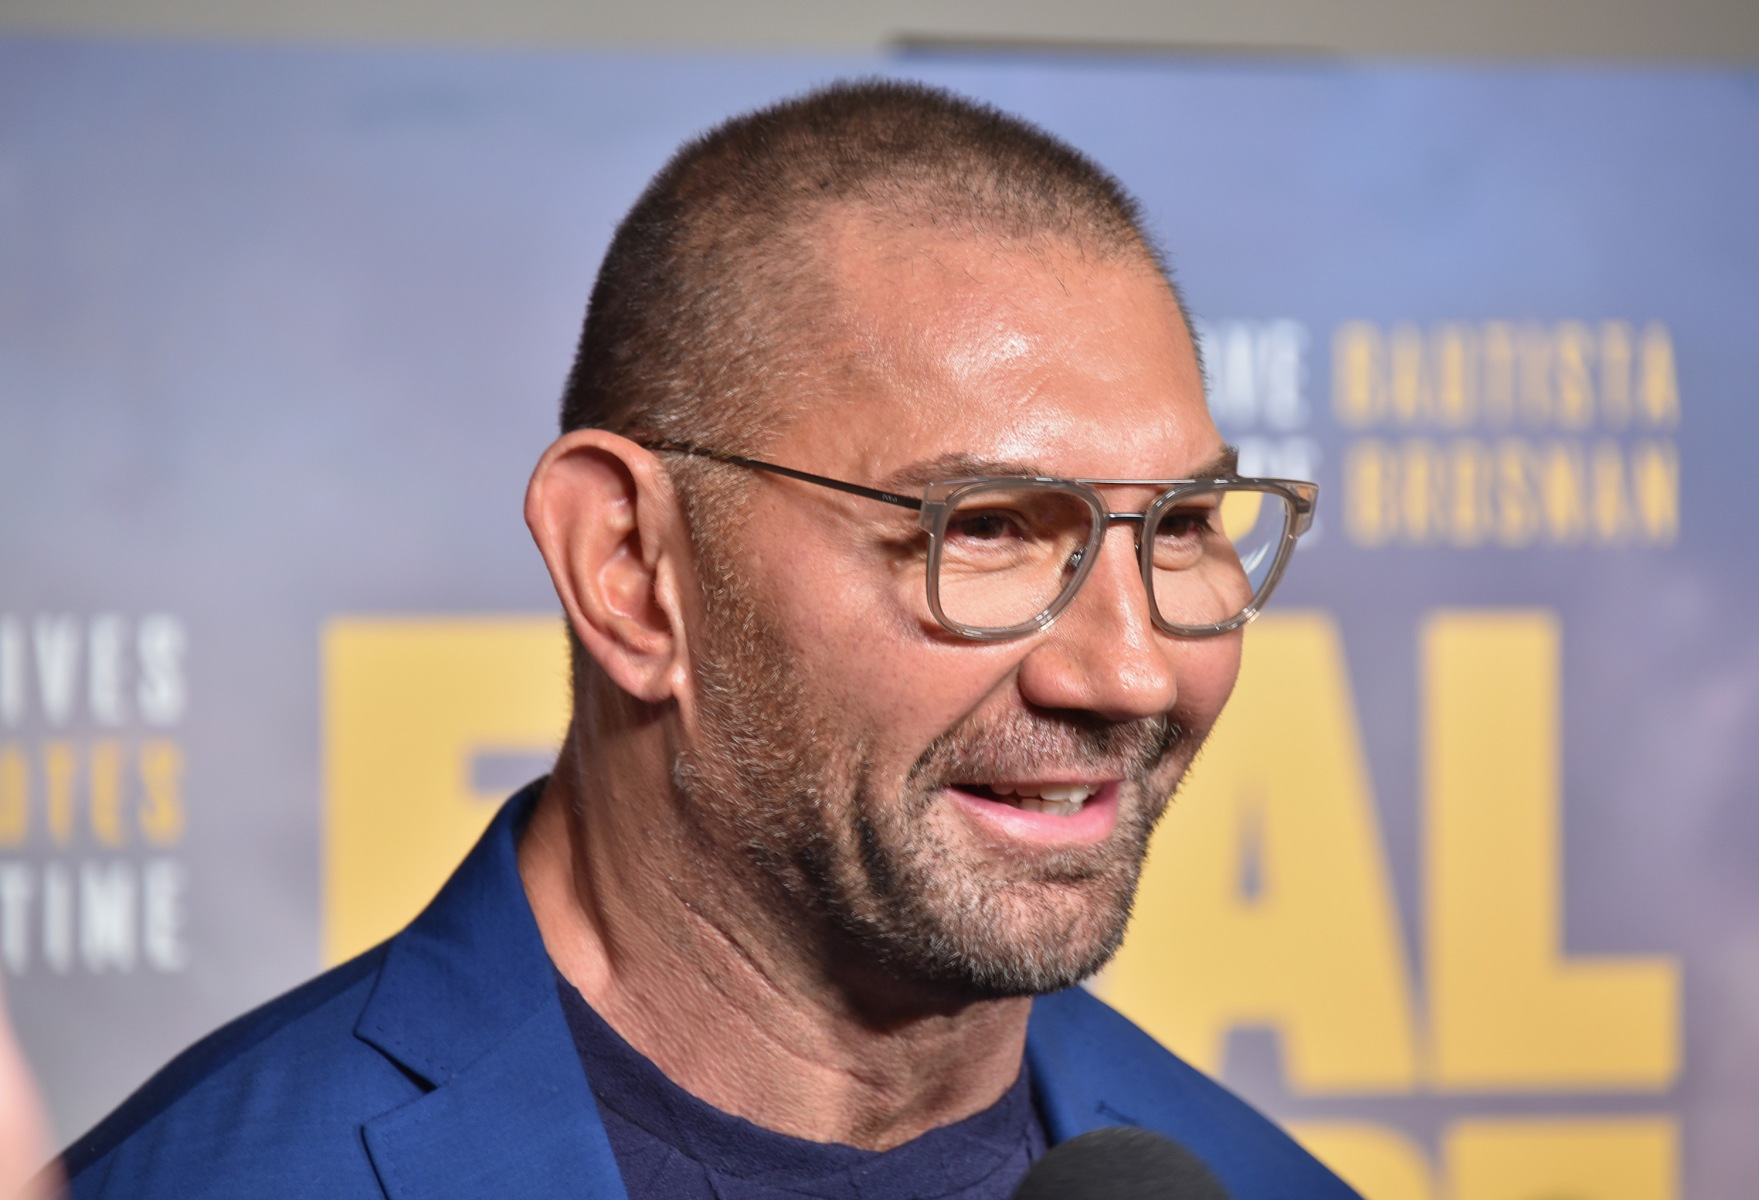 """Dave Bautista attends the World Premiere of """"Final Score"""" at The Ham Yard Hotel on August 30, 2018 in London, England.  (Photo by David M. Benett/Dave Benett/WireImage)"""